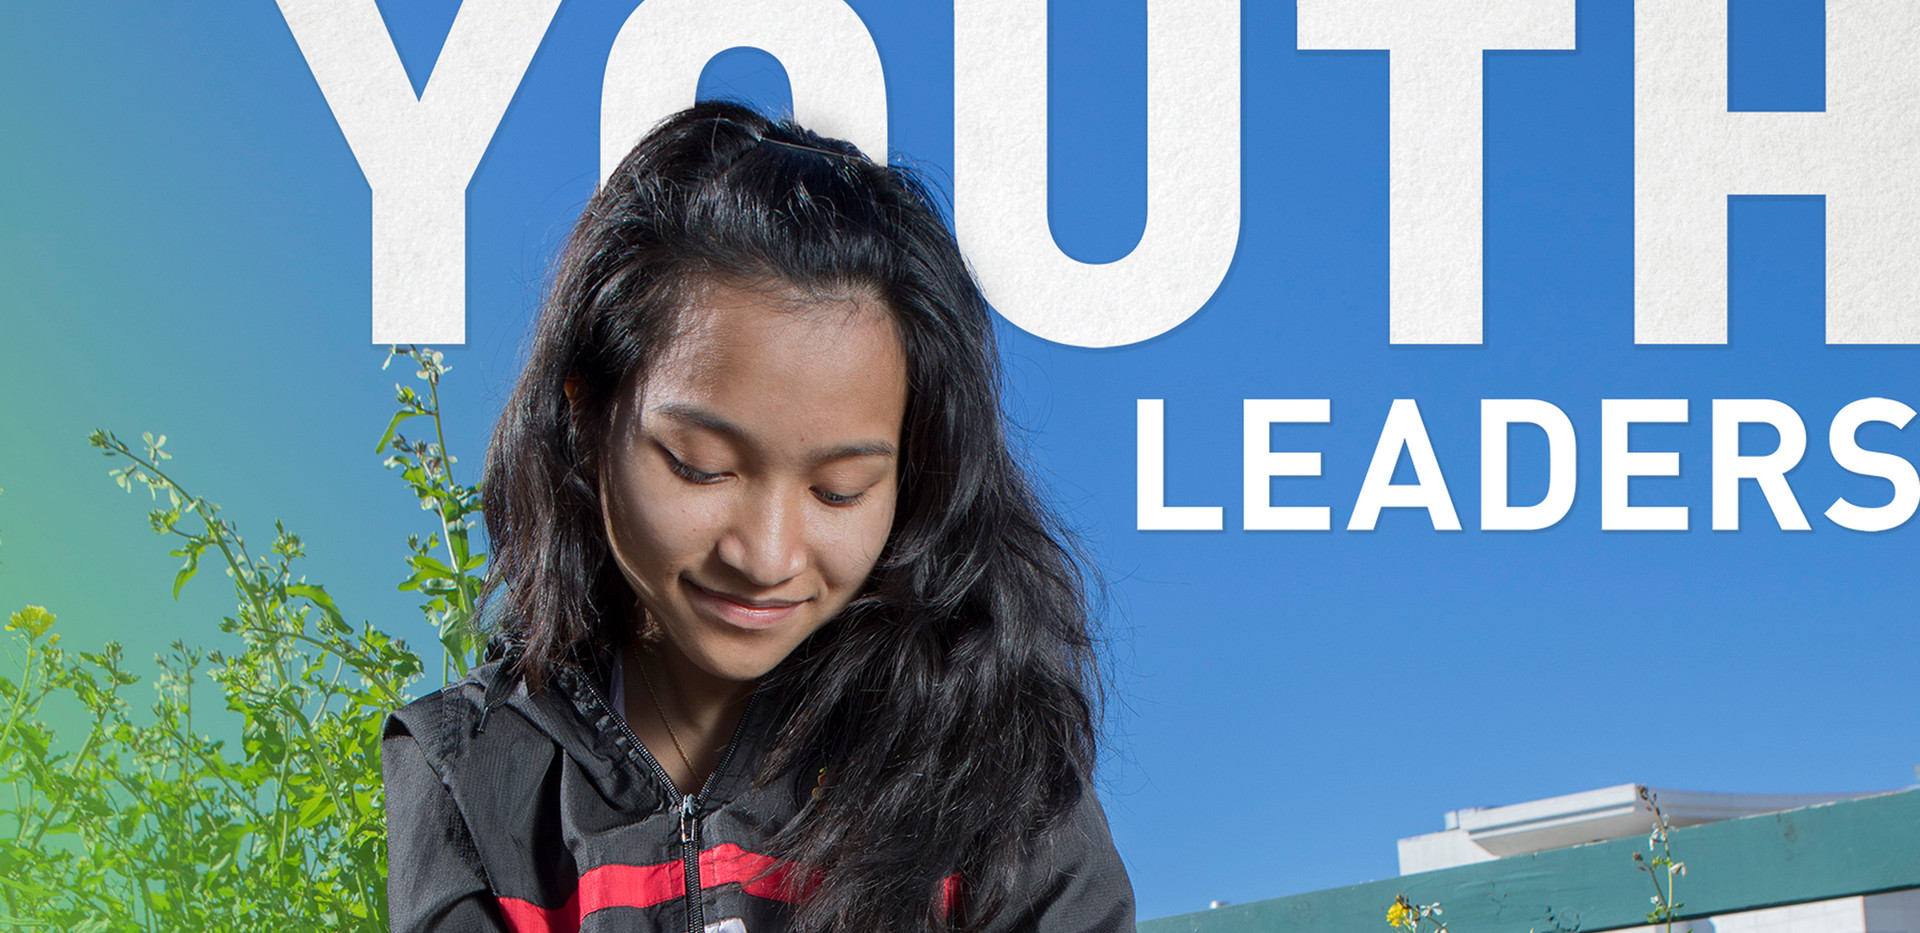 The Future Food: Youth Leaders